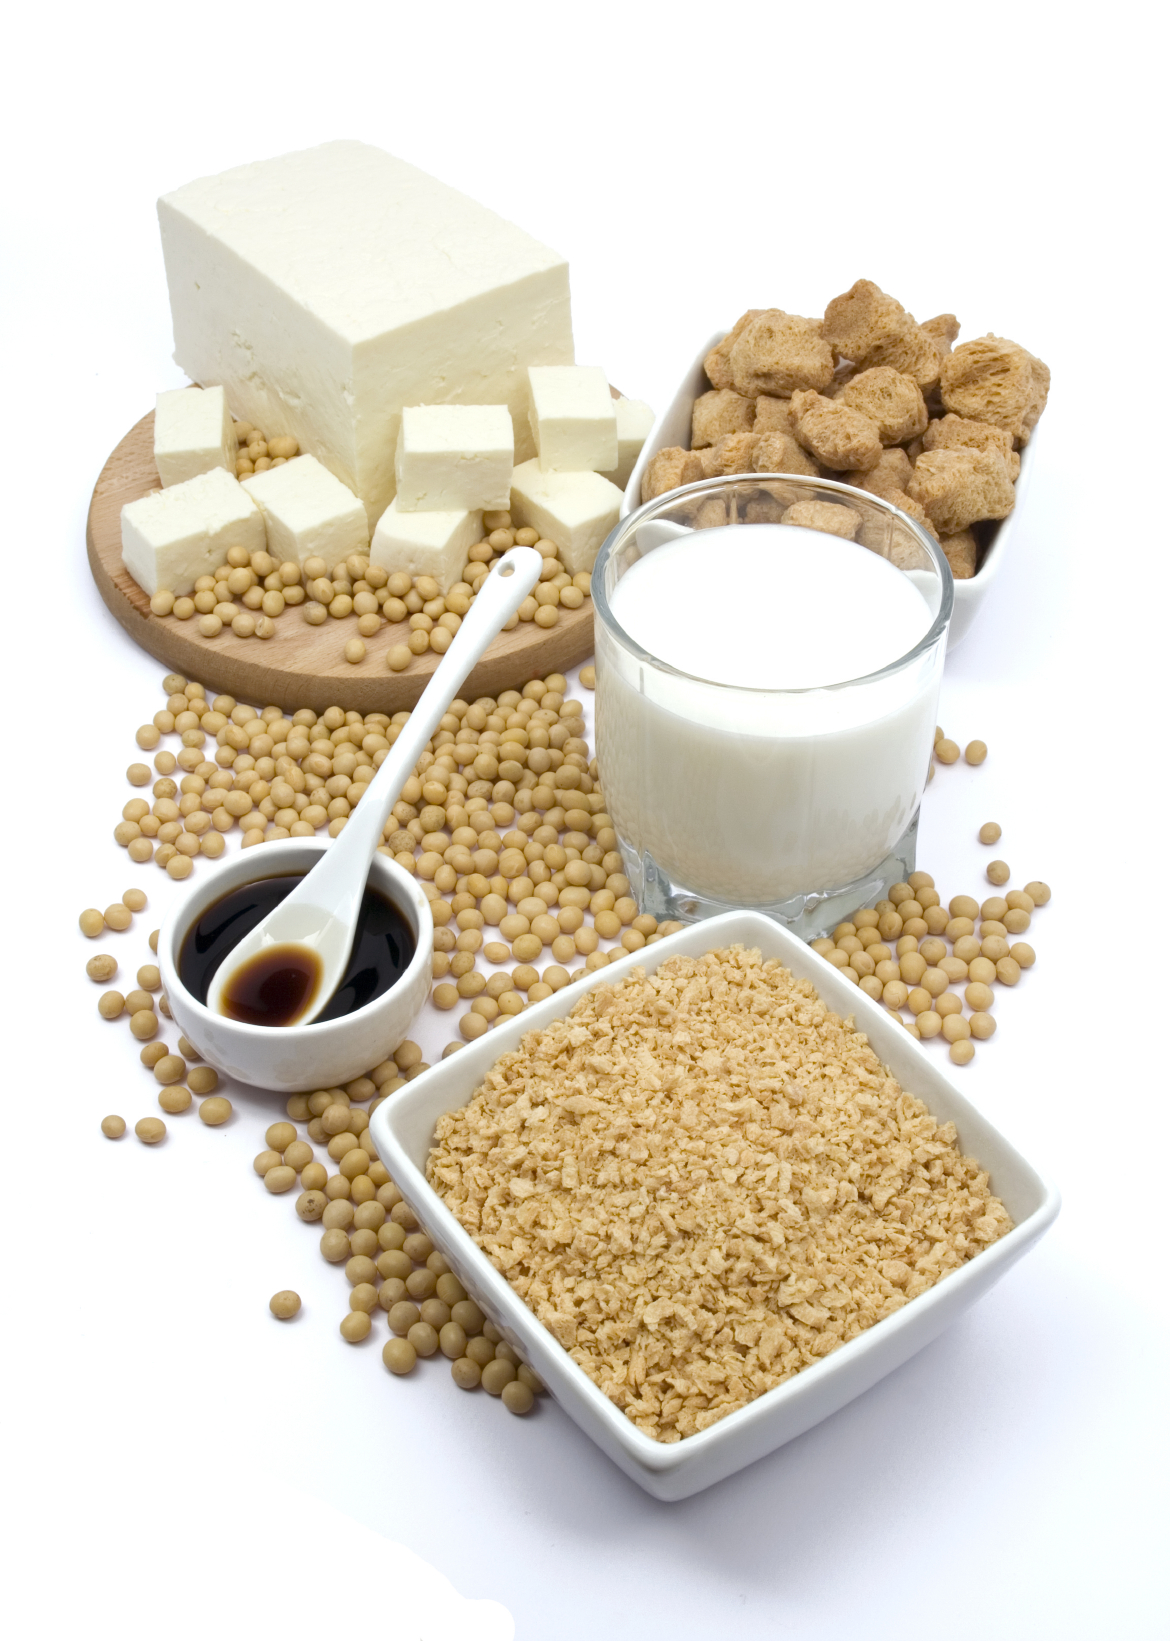 Soy is a hidden ingredient is a lot of processed foods, making it a difficult allergy to manage.